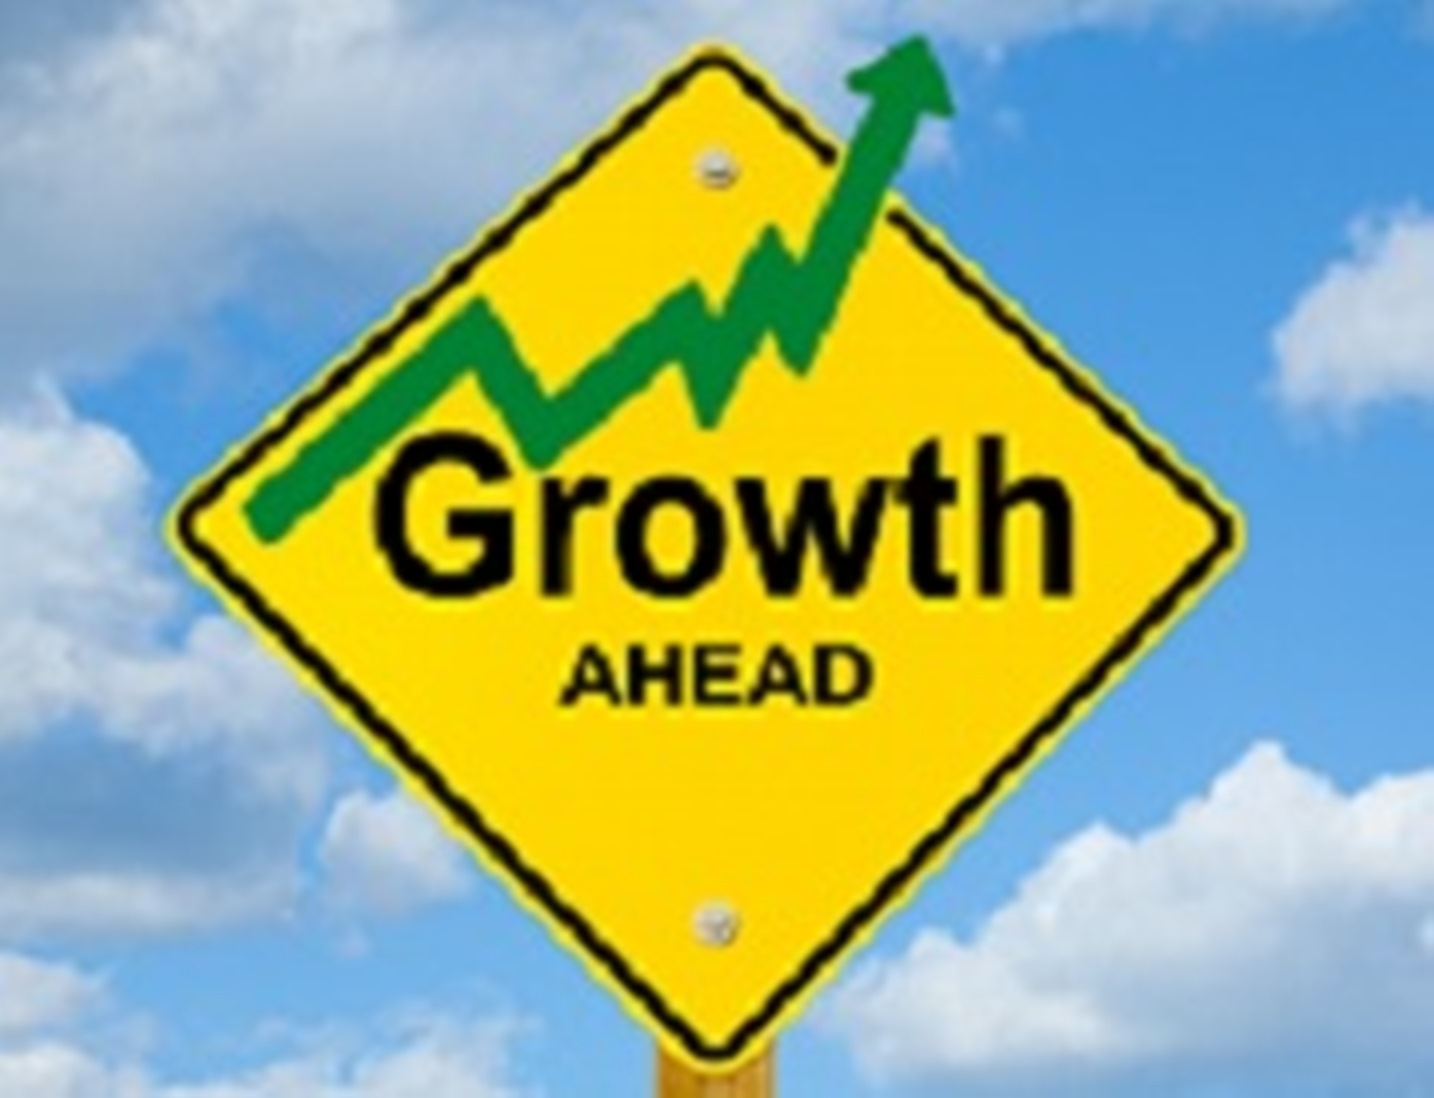 Tech M&A Monthly: 10 Ways to Increase Company Value - #7 & 8